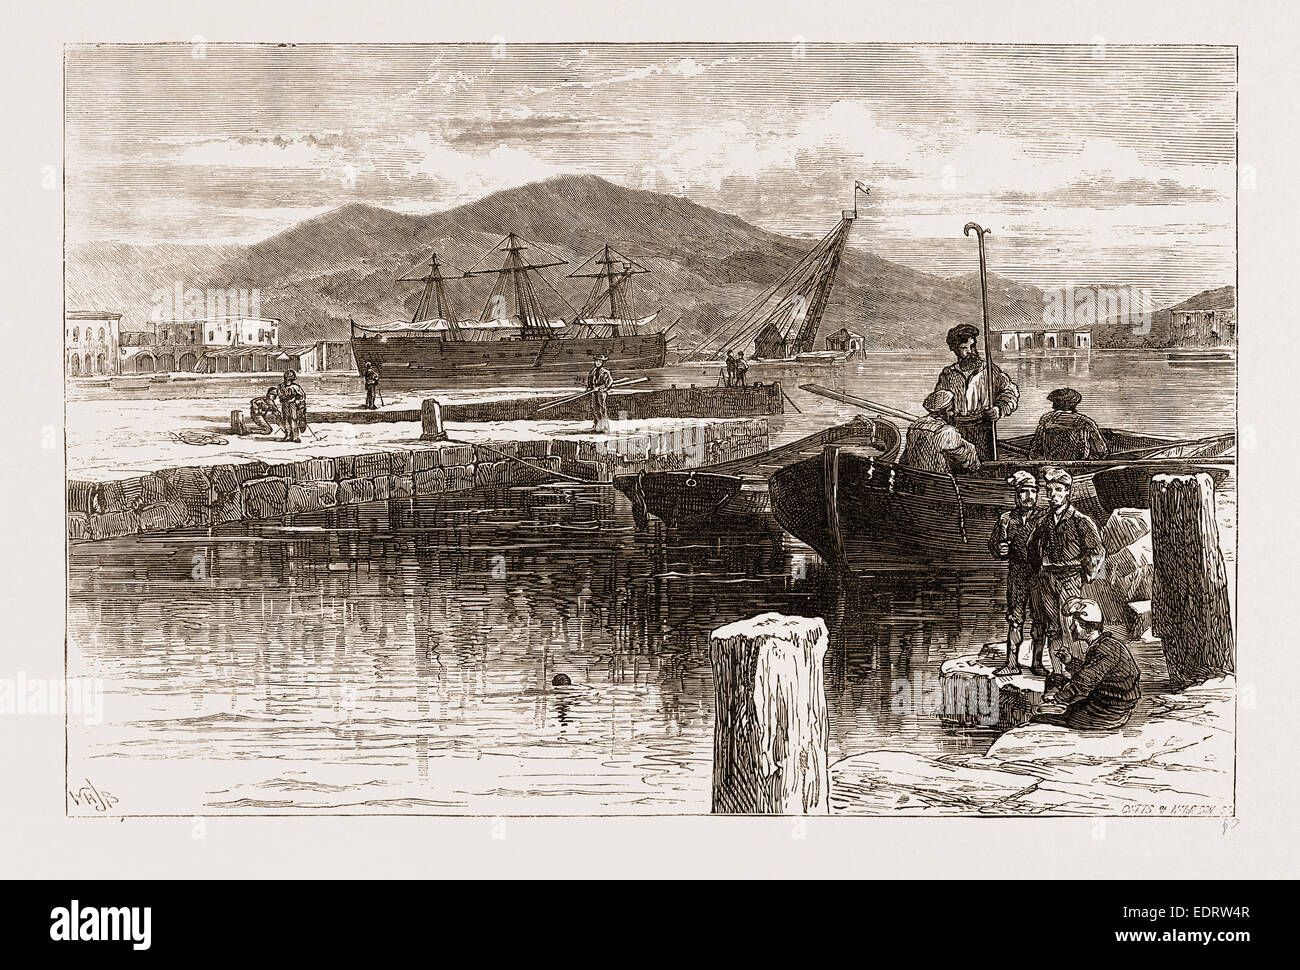 SPAIN 1873, THE HARBOUR OF CARTHAGENA, NOW IN THE POSSESSION OF THE INSURGENTS - Stock Image